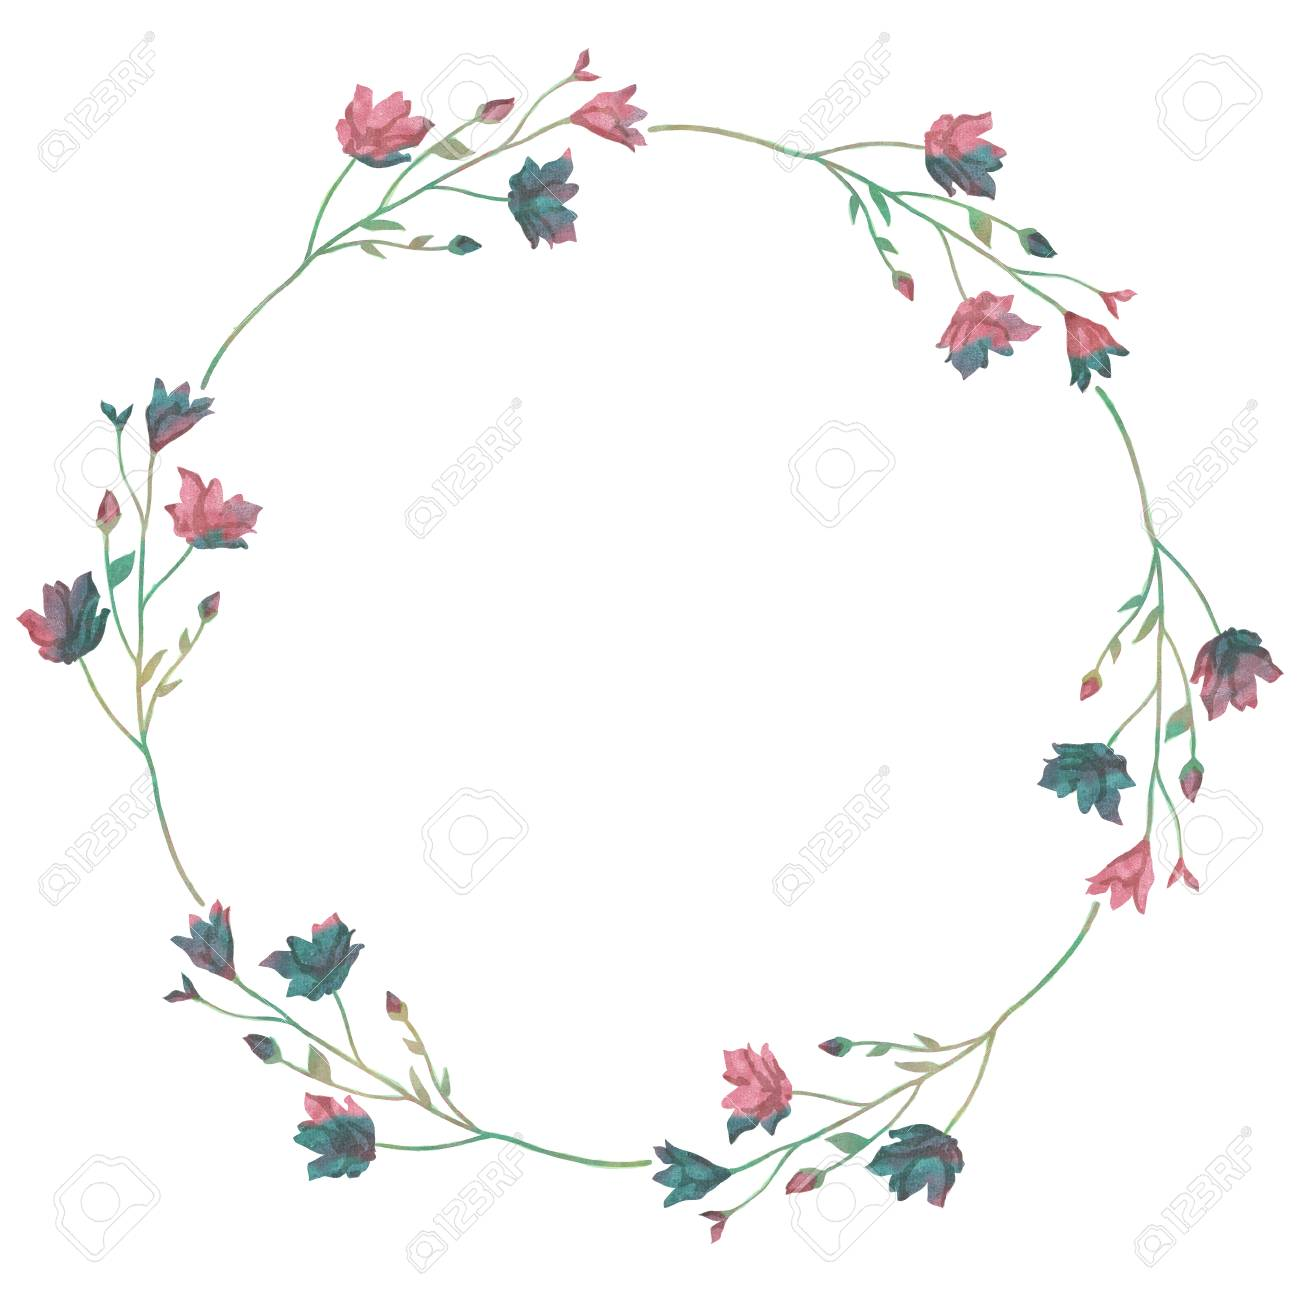 Watercolor Greenery Wreath Illustration Stock Vector